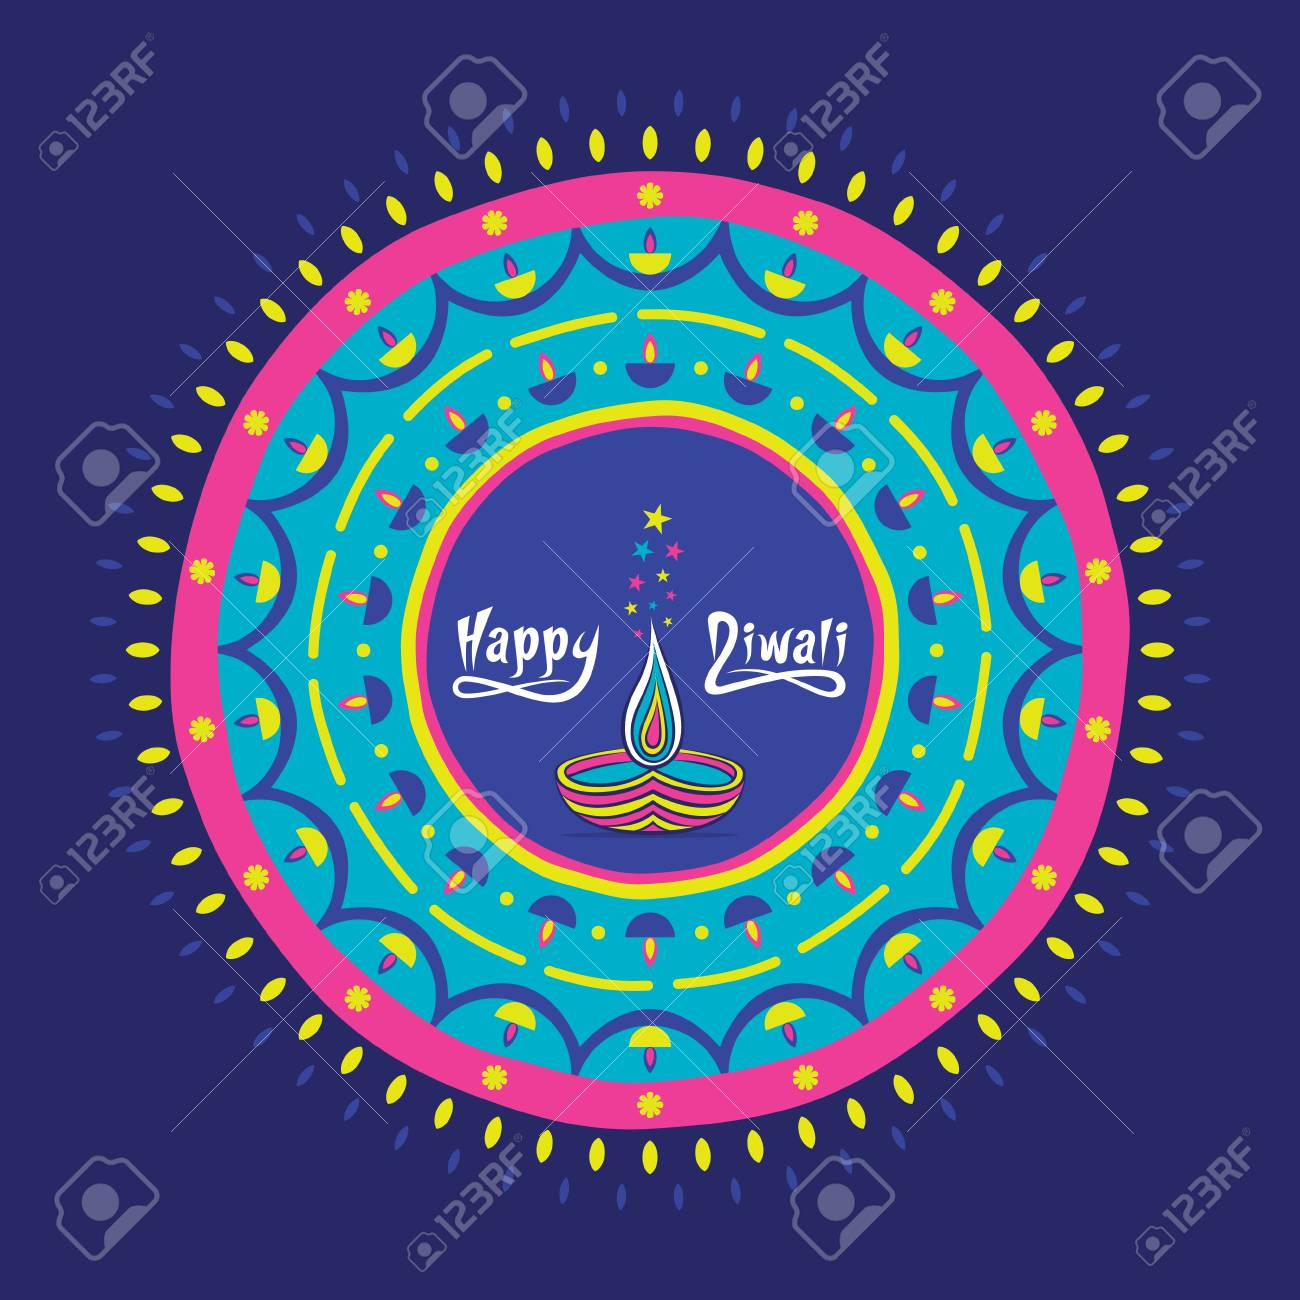 Creative Happy Diwali Greeting Design Decorate With Colorful